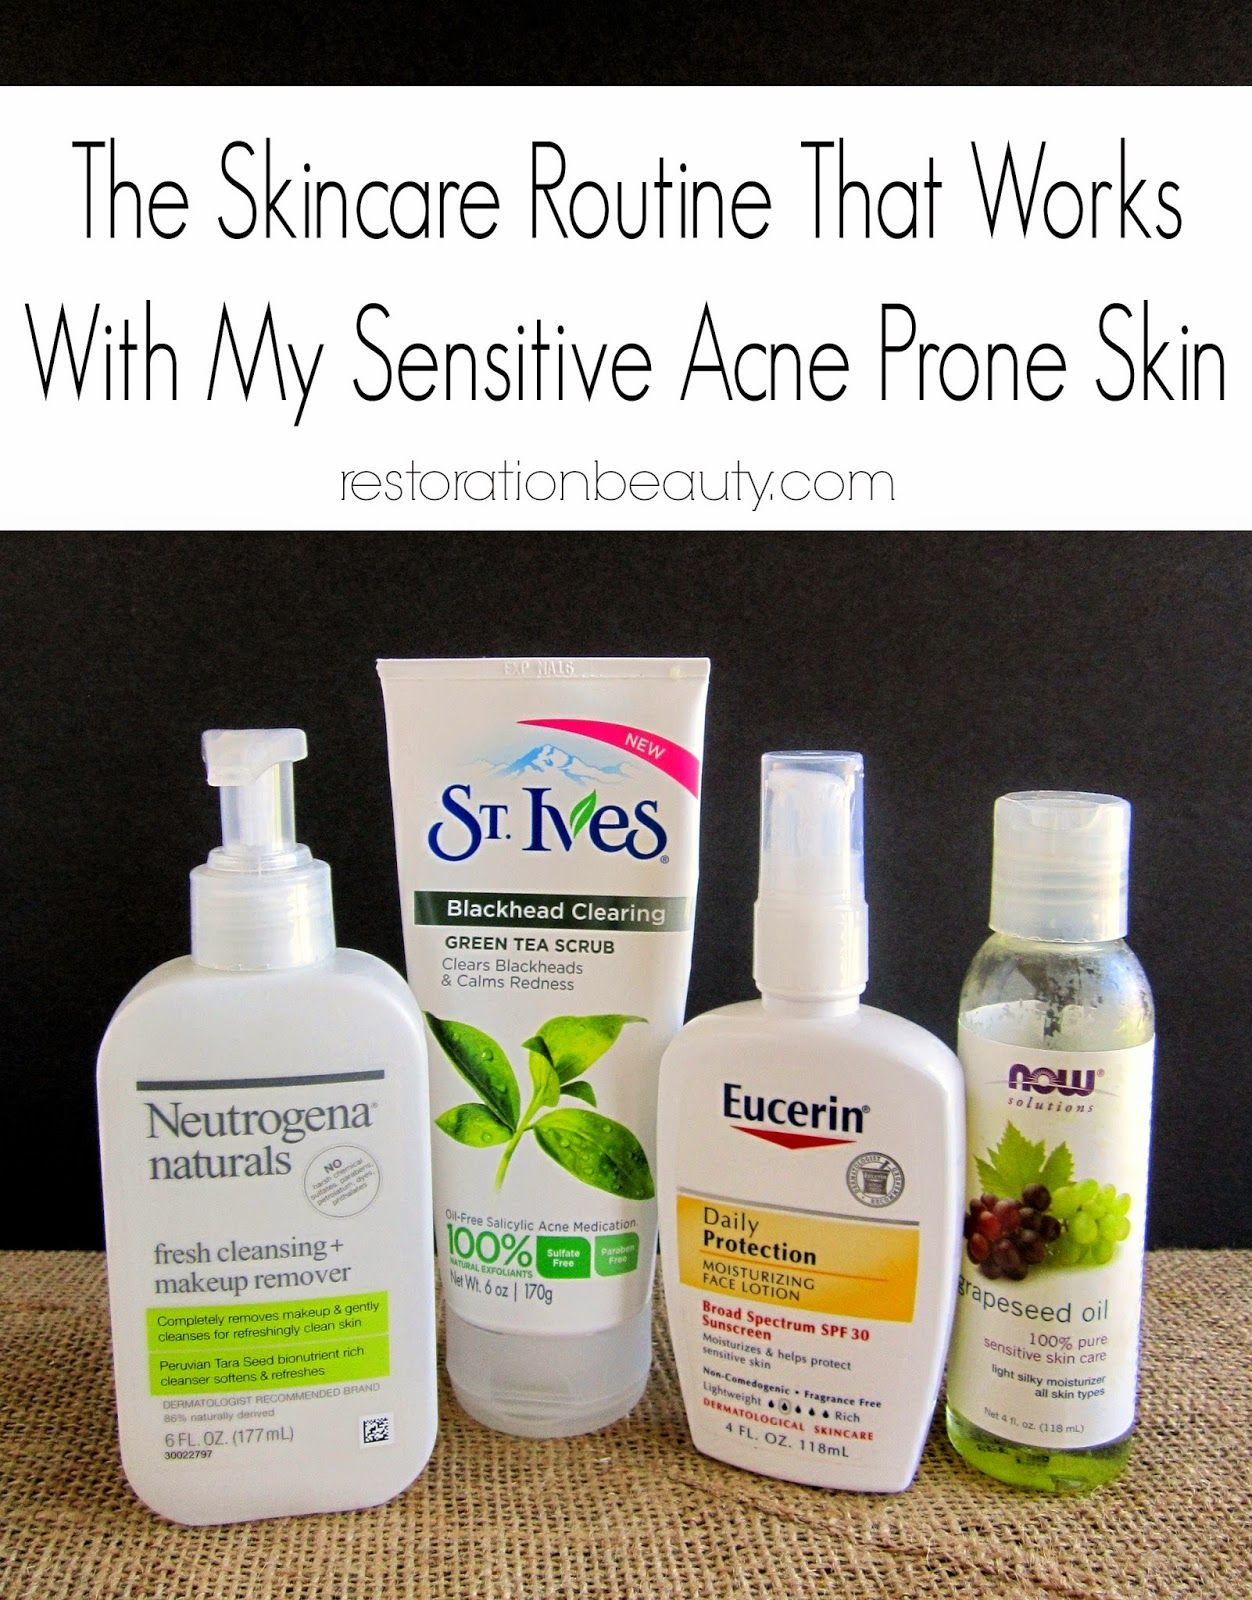 The Skincare Routine That Works With My Sensitive Acne